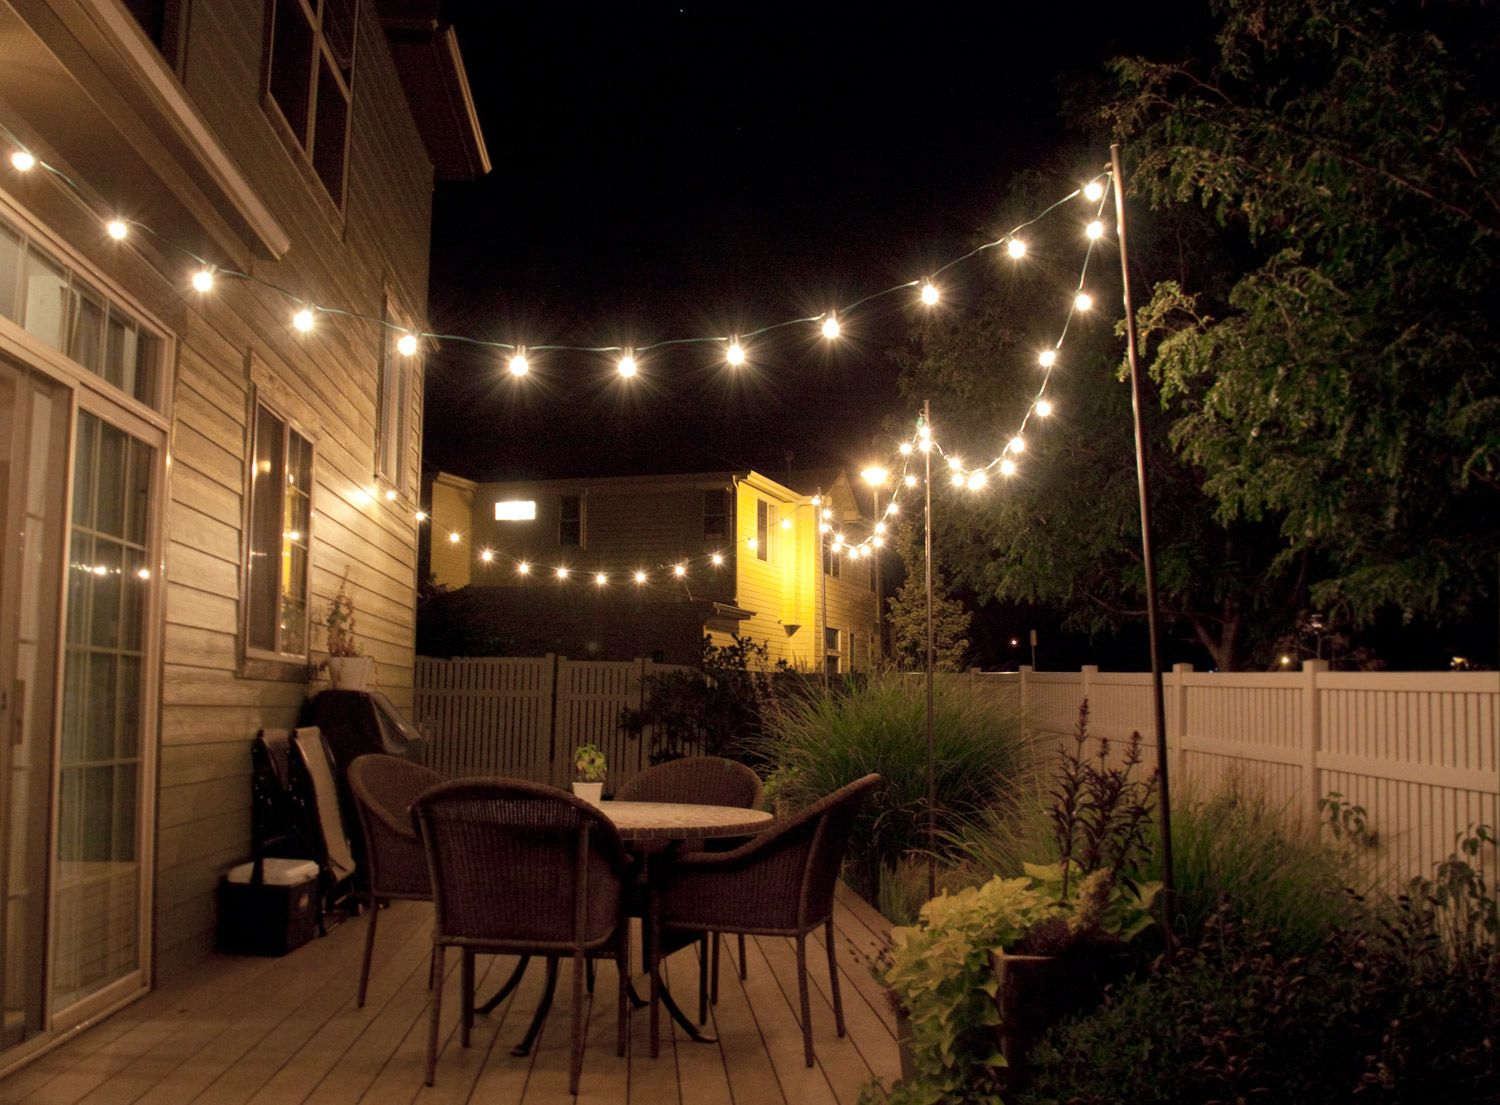 Outdoor String Lighting Ideas Custom How To Make Inexpensive Poles To Hang String Lights On  Café Style